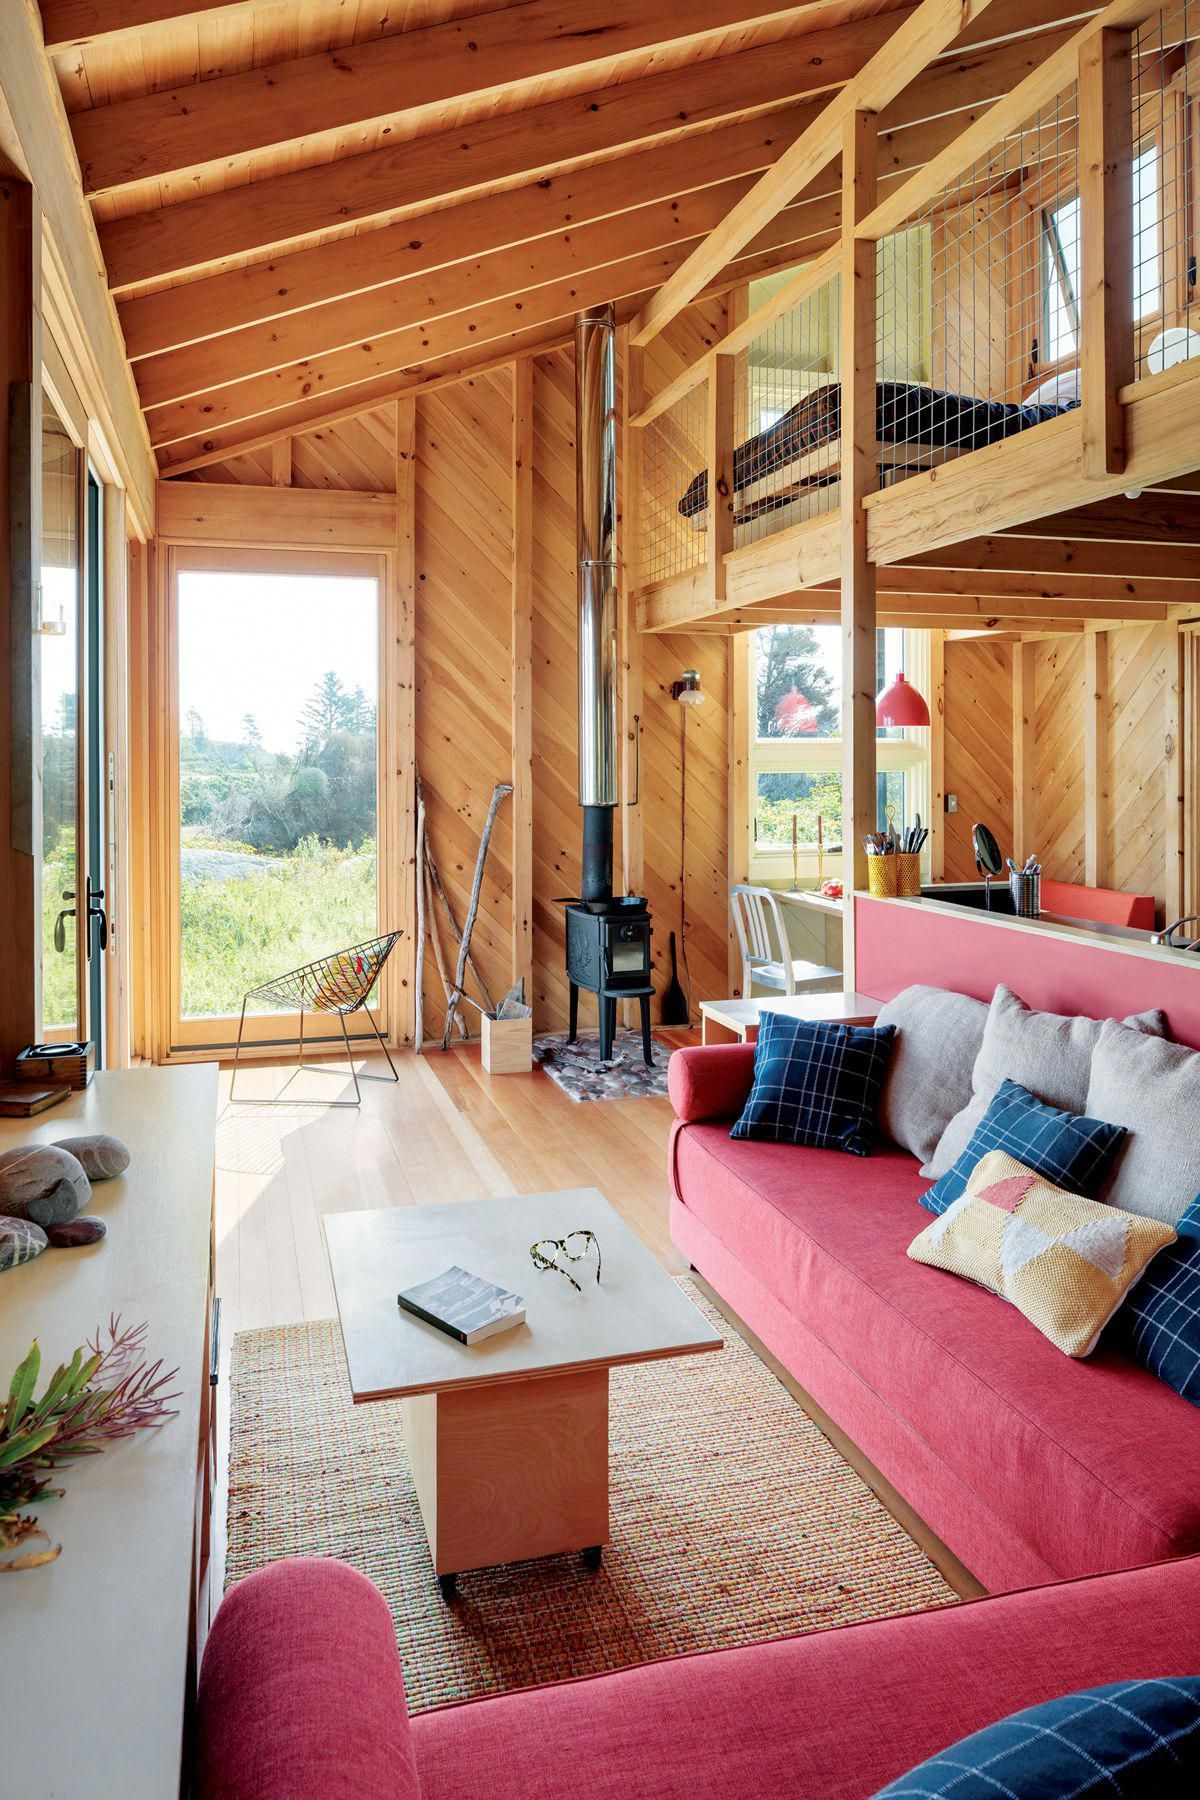 6 Tiny Homes In Maine Maine Homes By Down East Magazine Cabins Modern Tiny House Tiny House Interior Design Tiny House Design